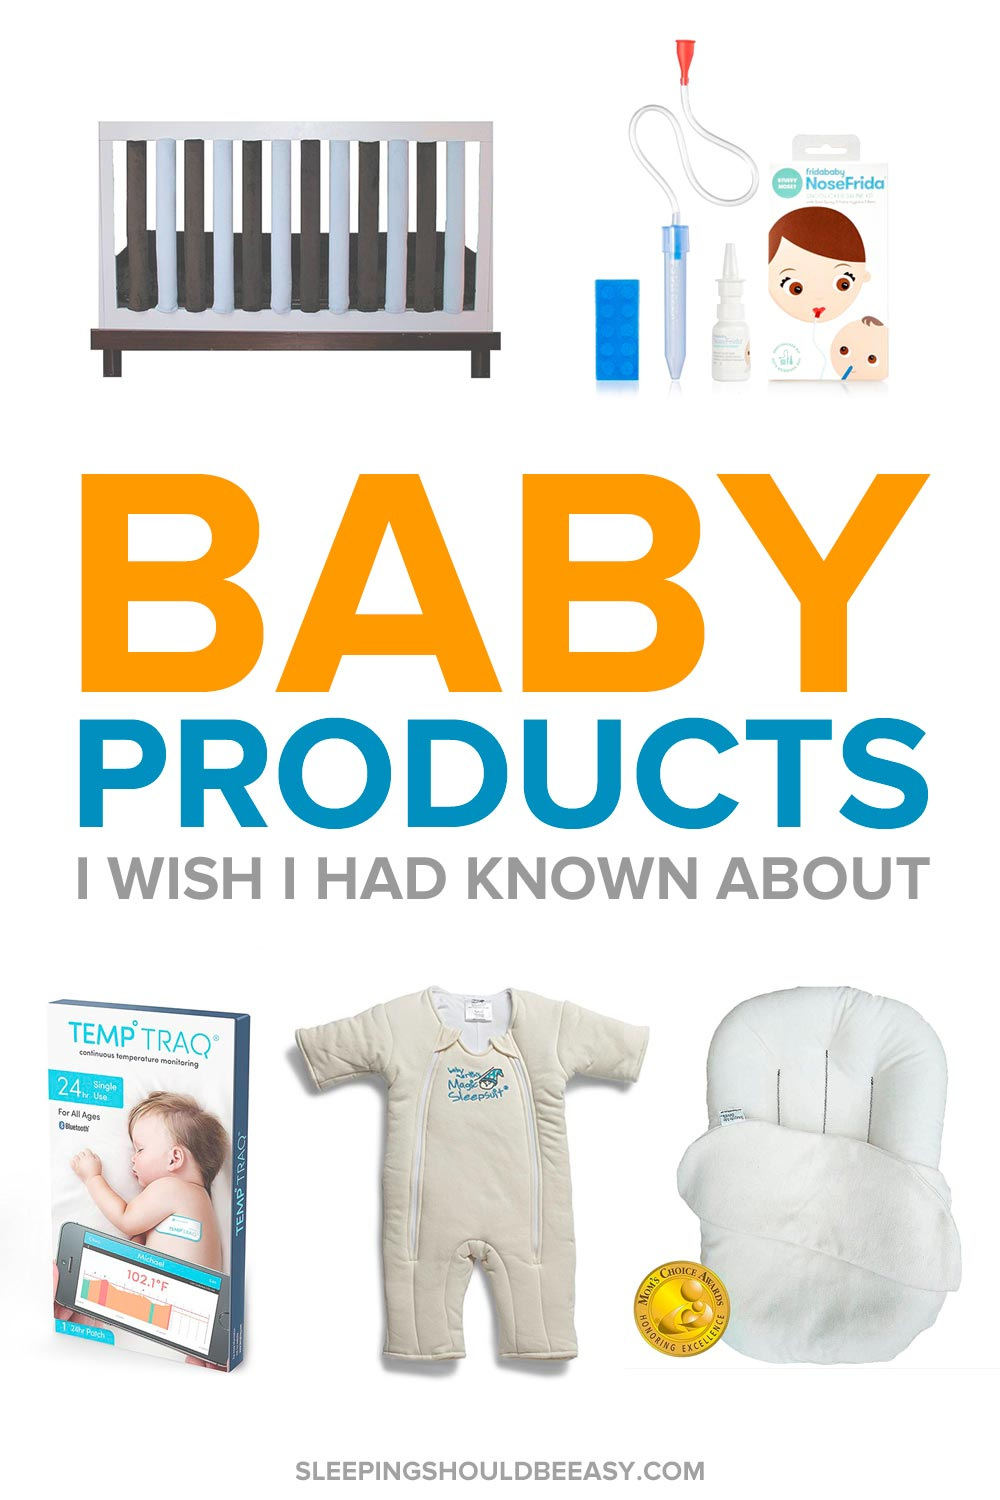 It's not too late for you! Discover the 7 baby products I wish I had known about that would've made caring for my baby much easier.